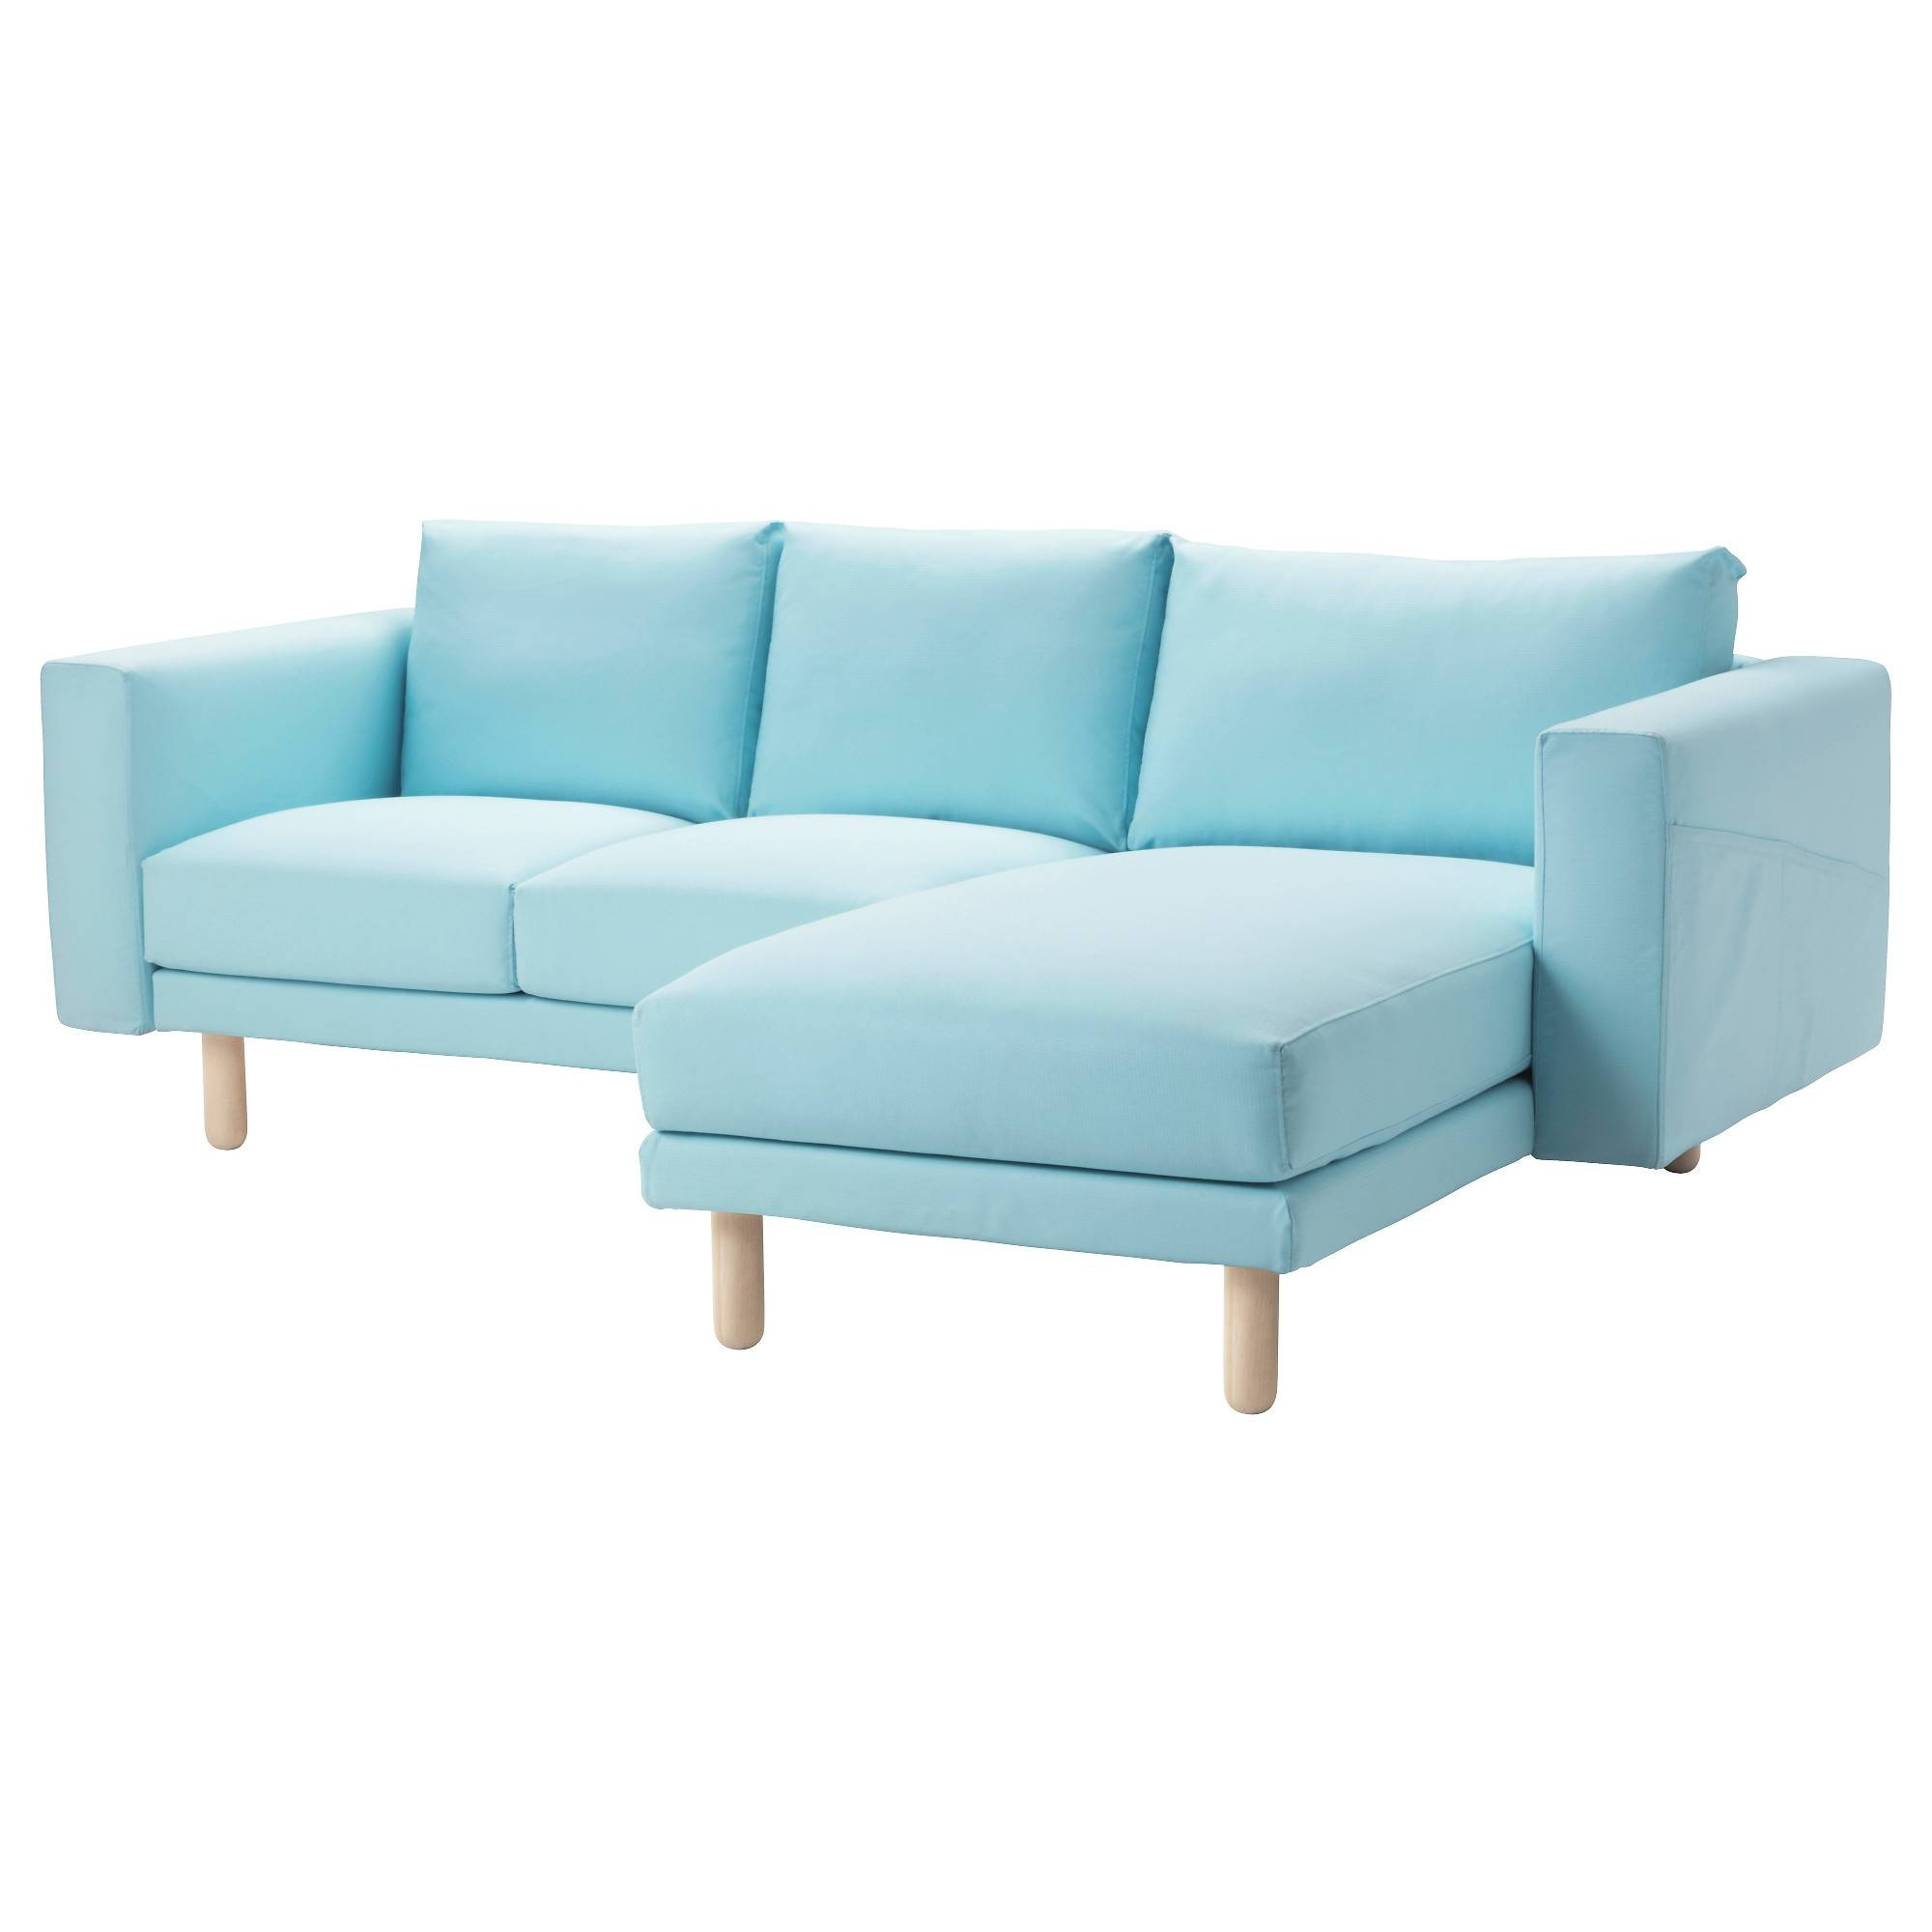 Furniture: Sofa Chair Covers | Ikea Couch Covers | Grey Couch Covers regarding Turquoise Sofa Covers (Image 12 of 30)